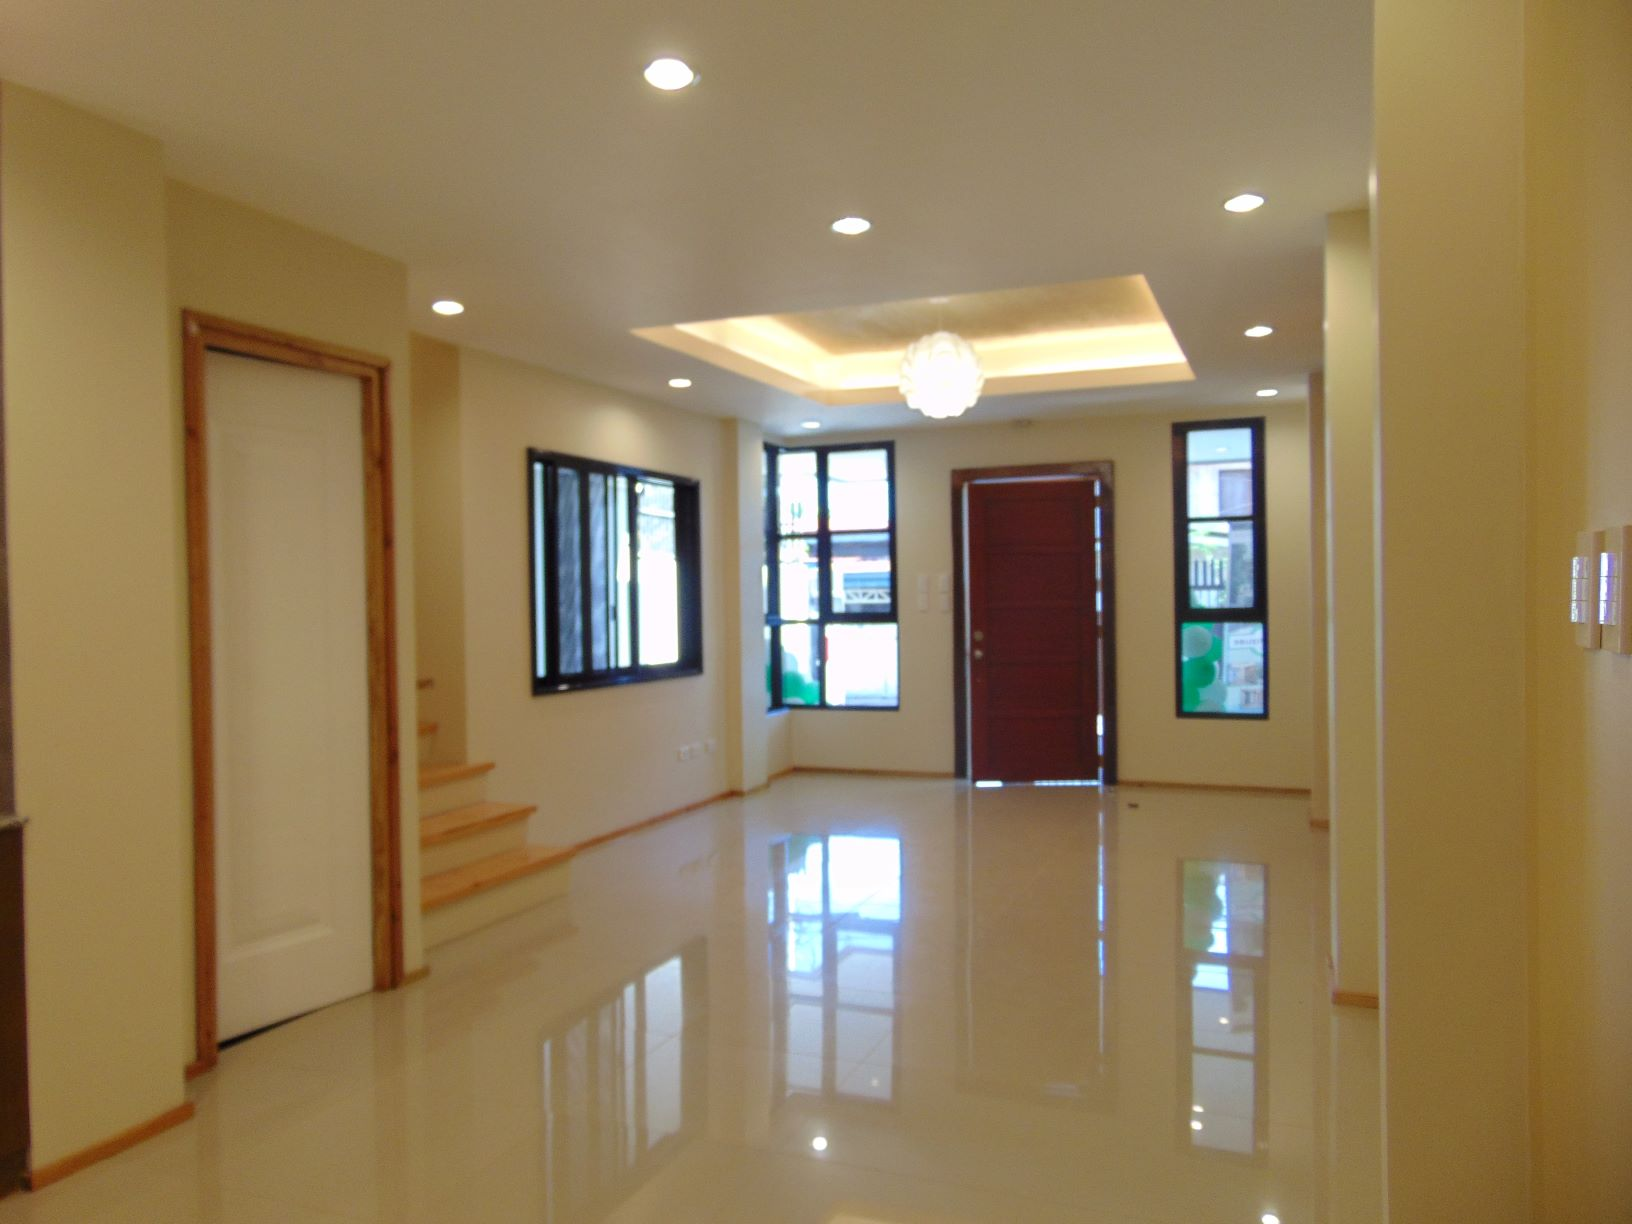 5-bedroom-newly-built-house-in-punta-princesa-cebu-city-with-4-suv-car-parking